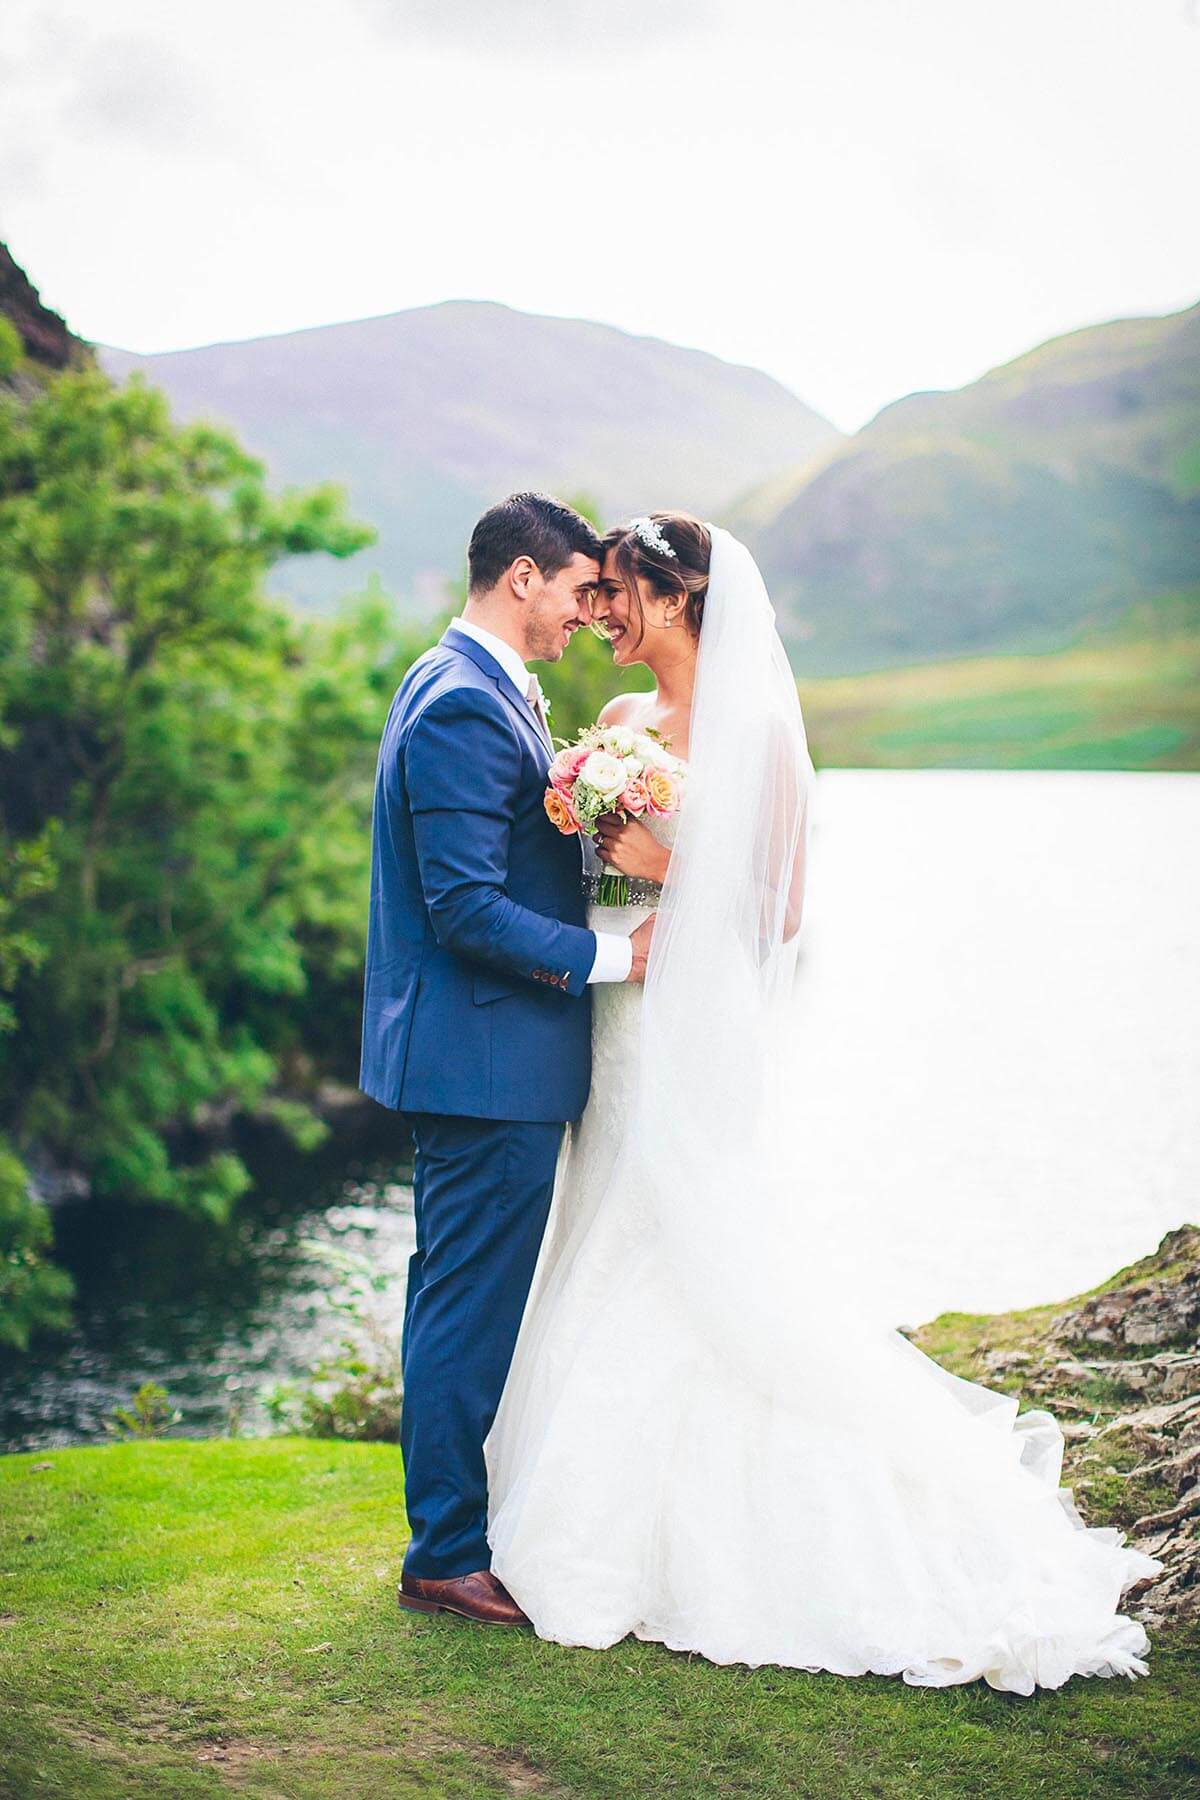 Jesse Knibbs Photographer - Lake District Wedding mountains and lake